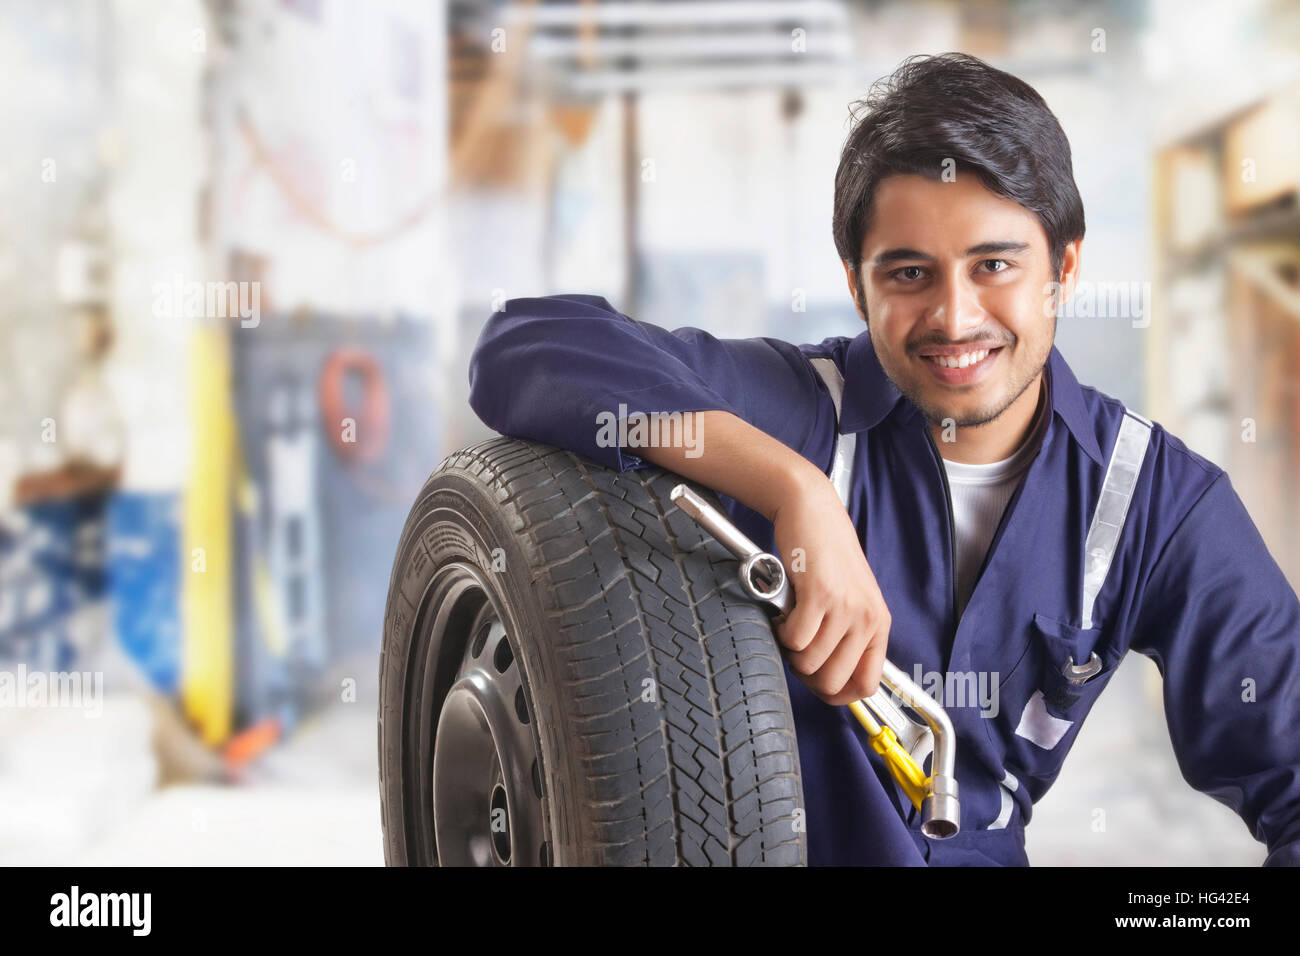 Portrait of car mechanic with spare tyre and hand tools in garage - Stock Image